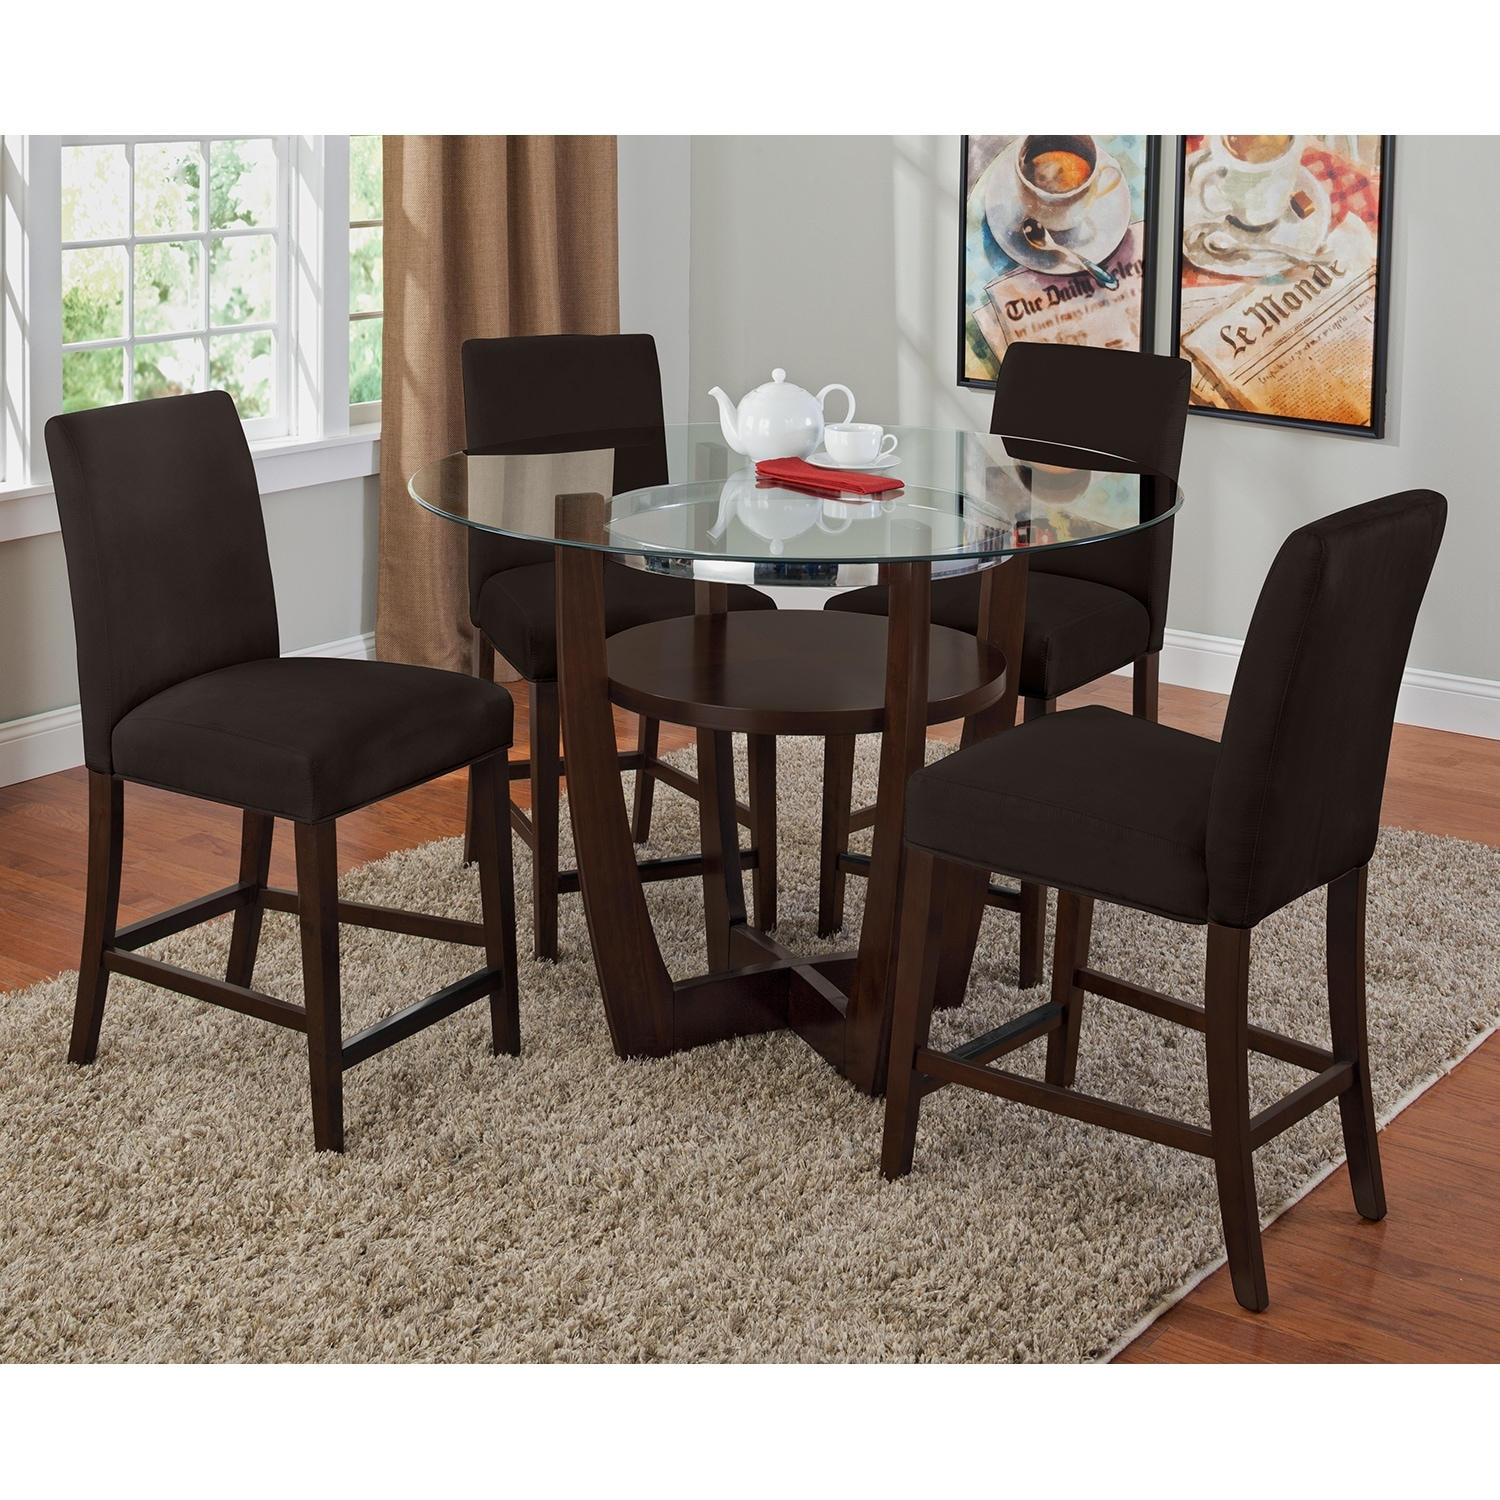 Alcove Counter Height Dinette with 4 Side Chairs Chocolate